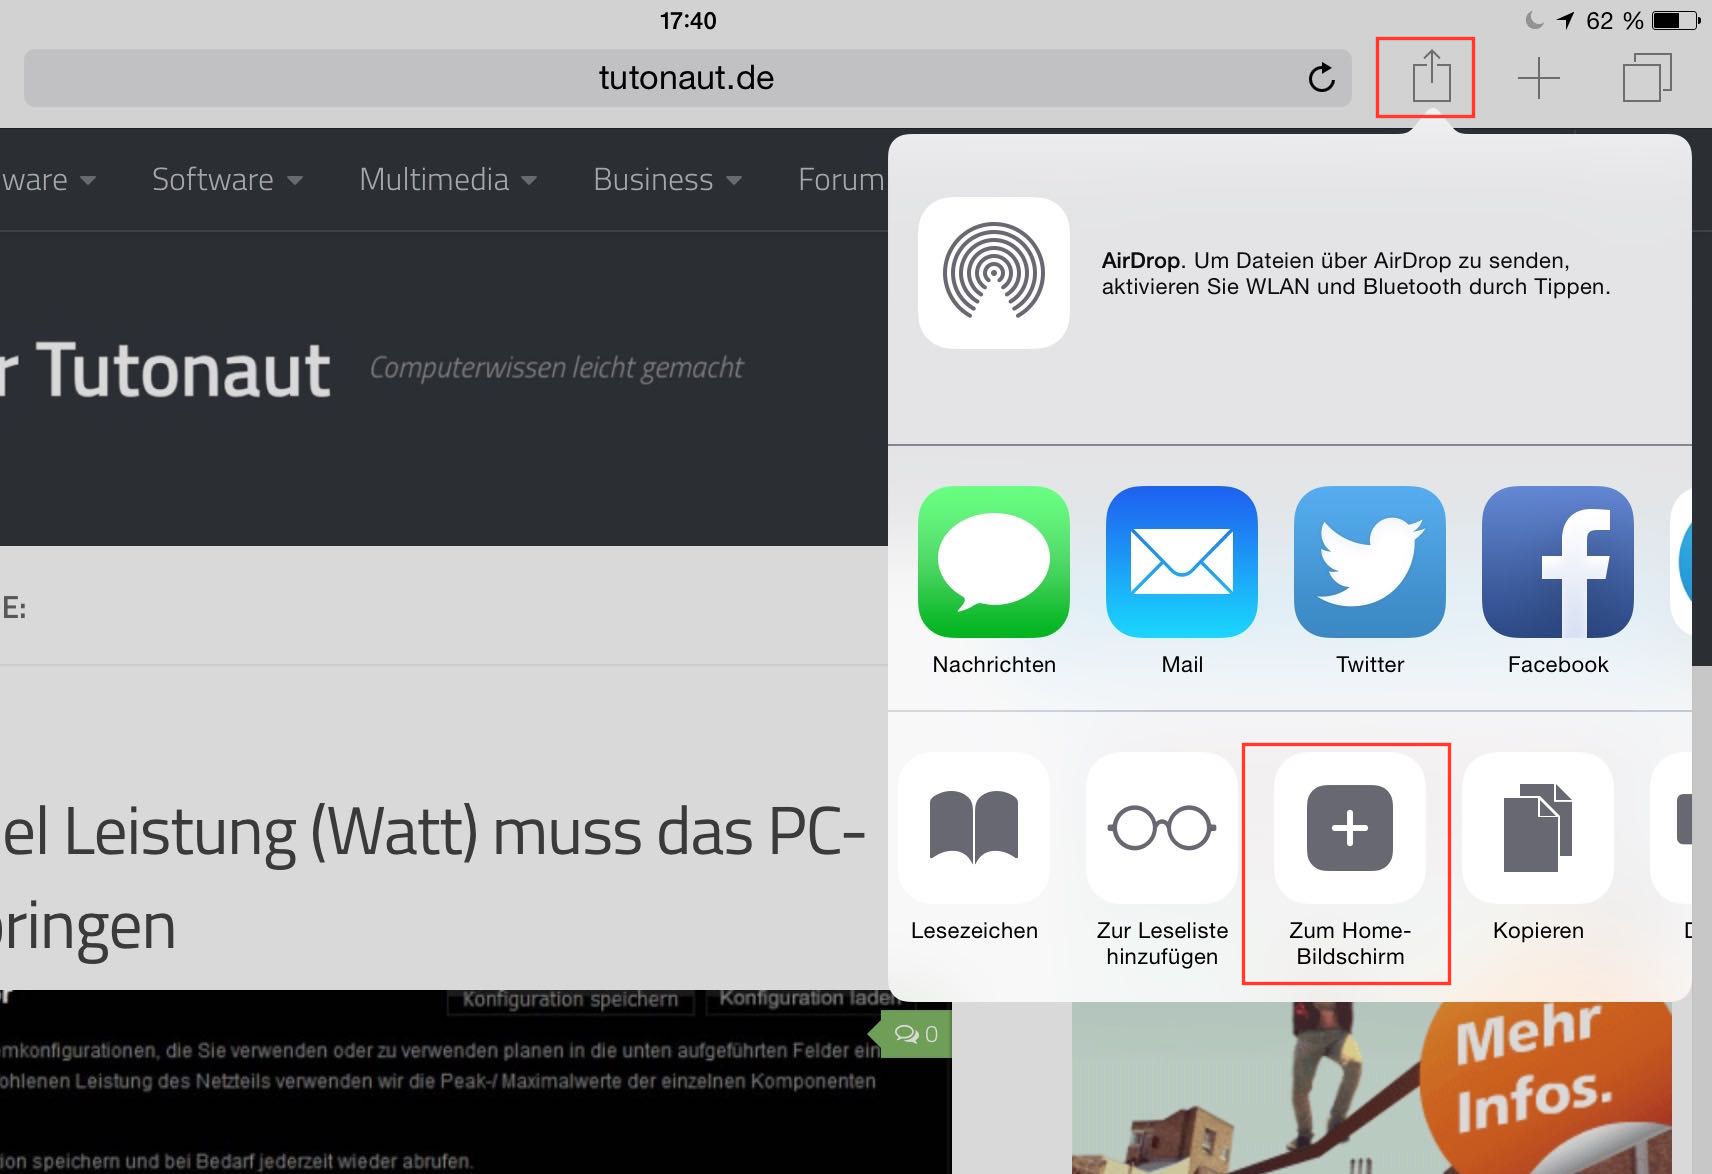 webseite als android app